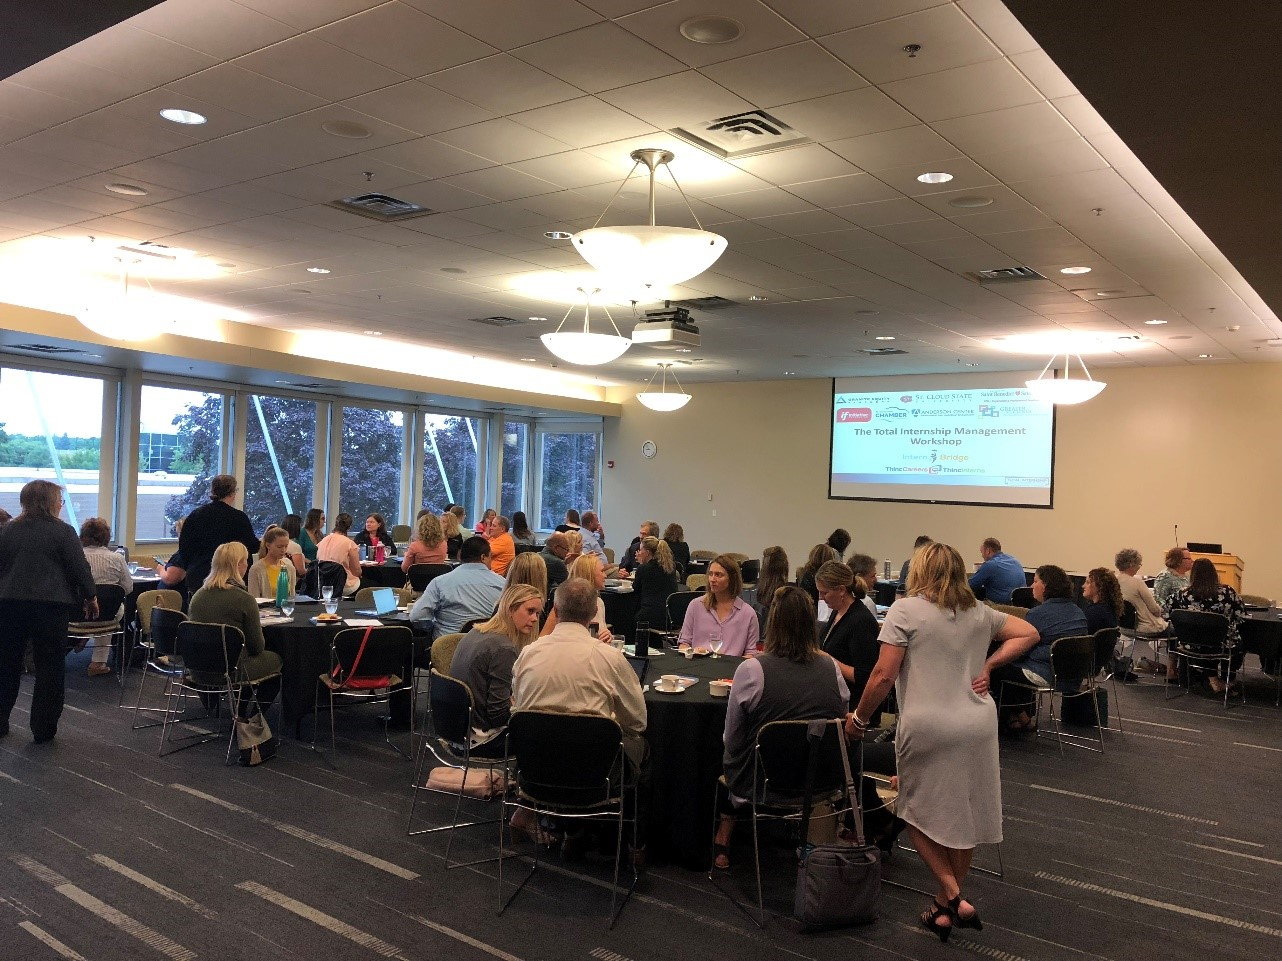 Workshop participants networking in the Cascade Room at St. Cloud State University at the beginning of the event